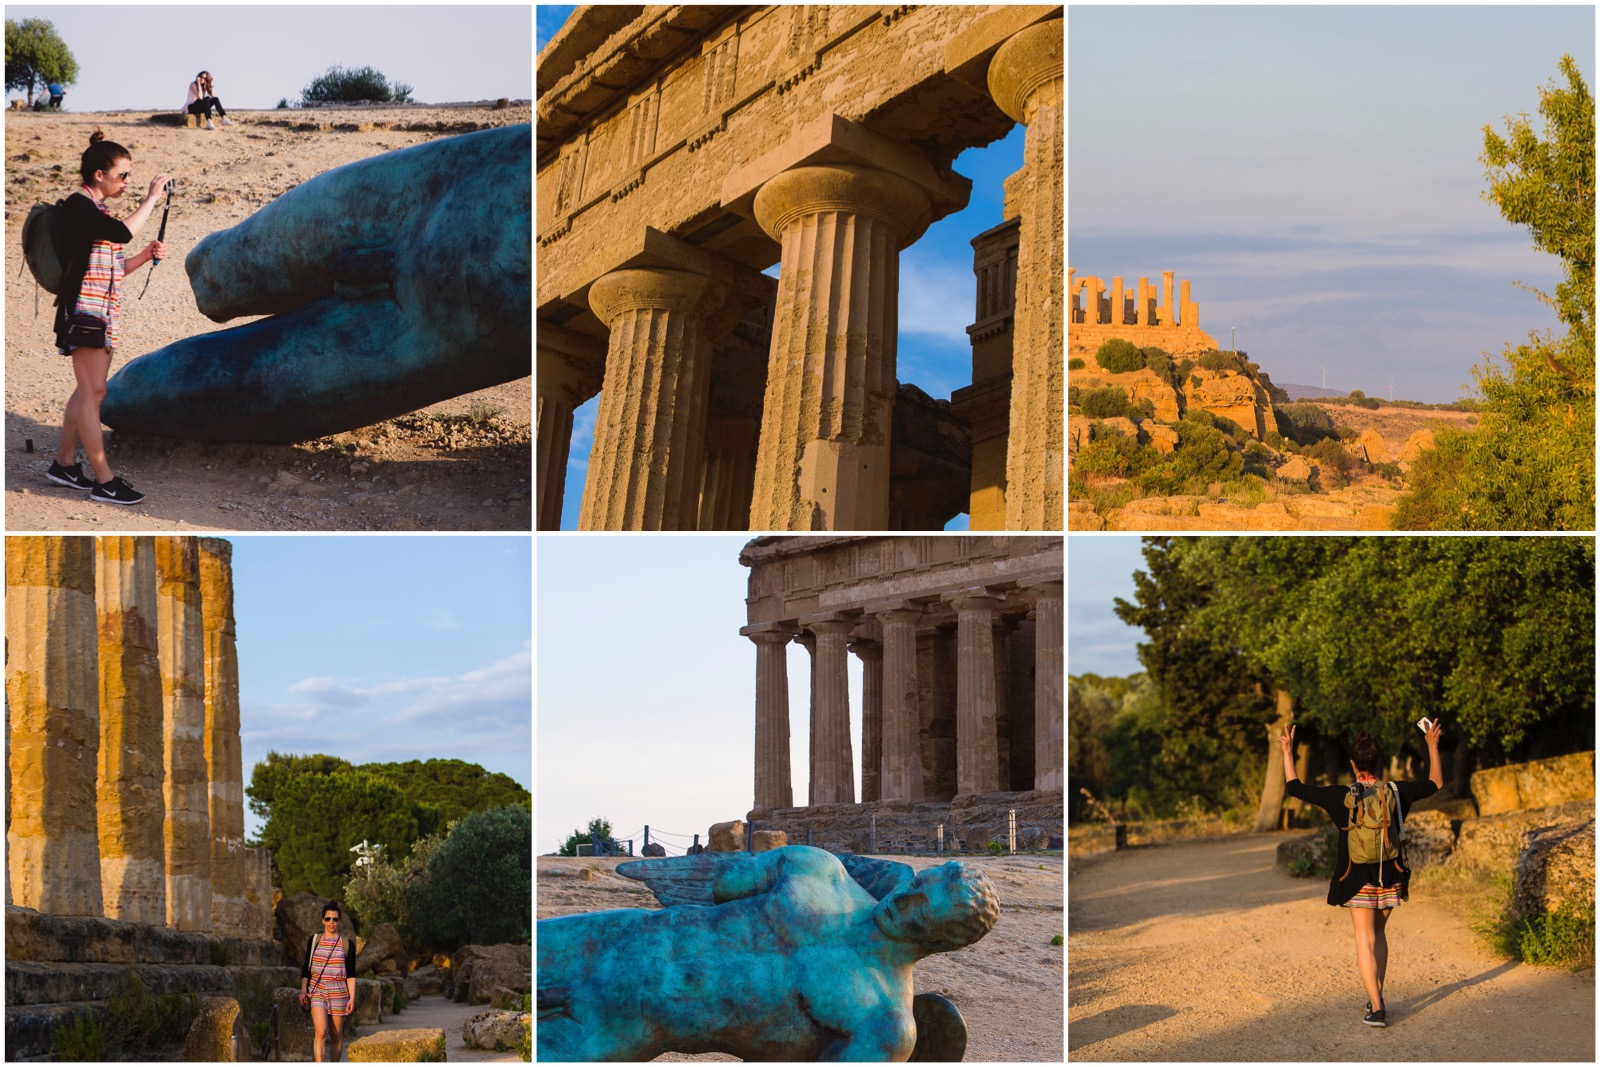 agrigento girls Sicily life tours offers customized private sicily tours, mount etna volcano tour, taormina, syracuse and agrigento day tours by personalized service.